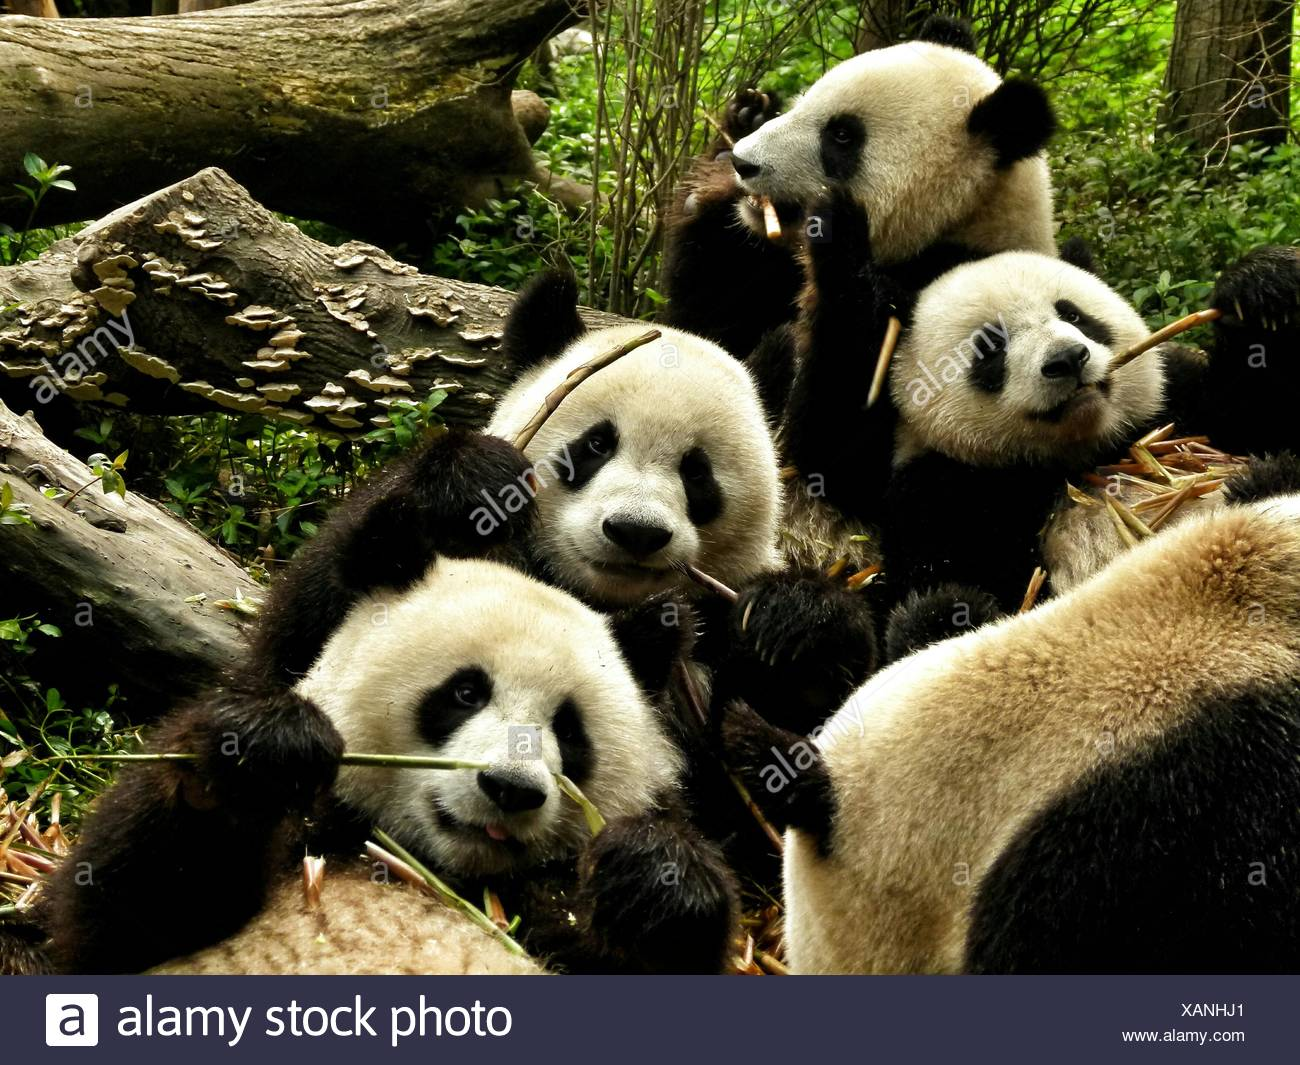 High Angle View Of Pandas In Forest - Stock Image